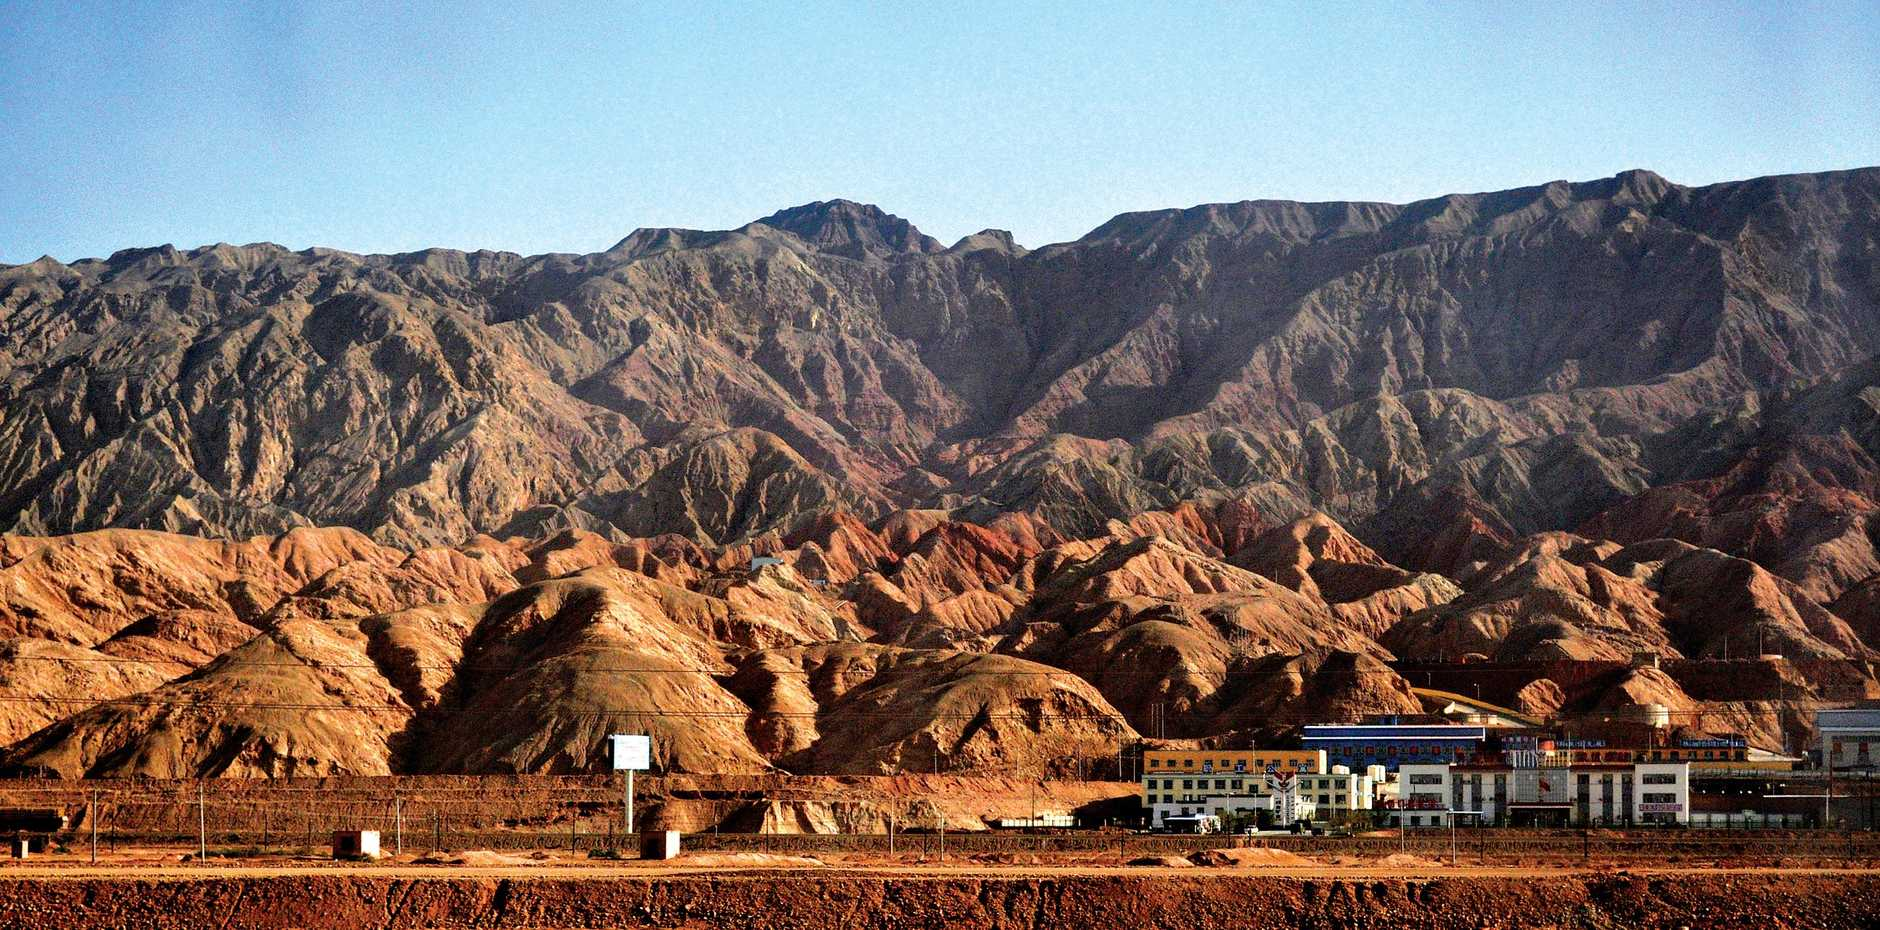 Just outside of Kashgar, China's westernmost city.